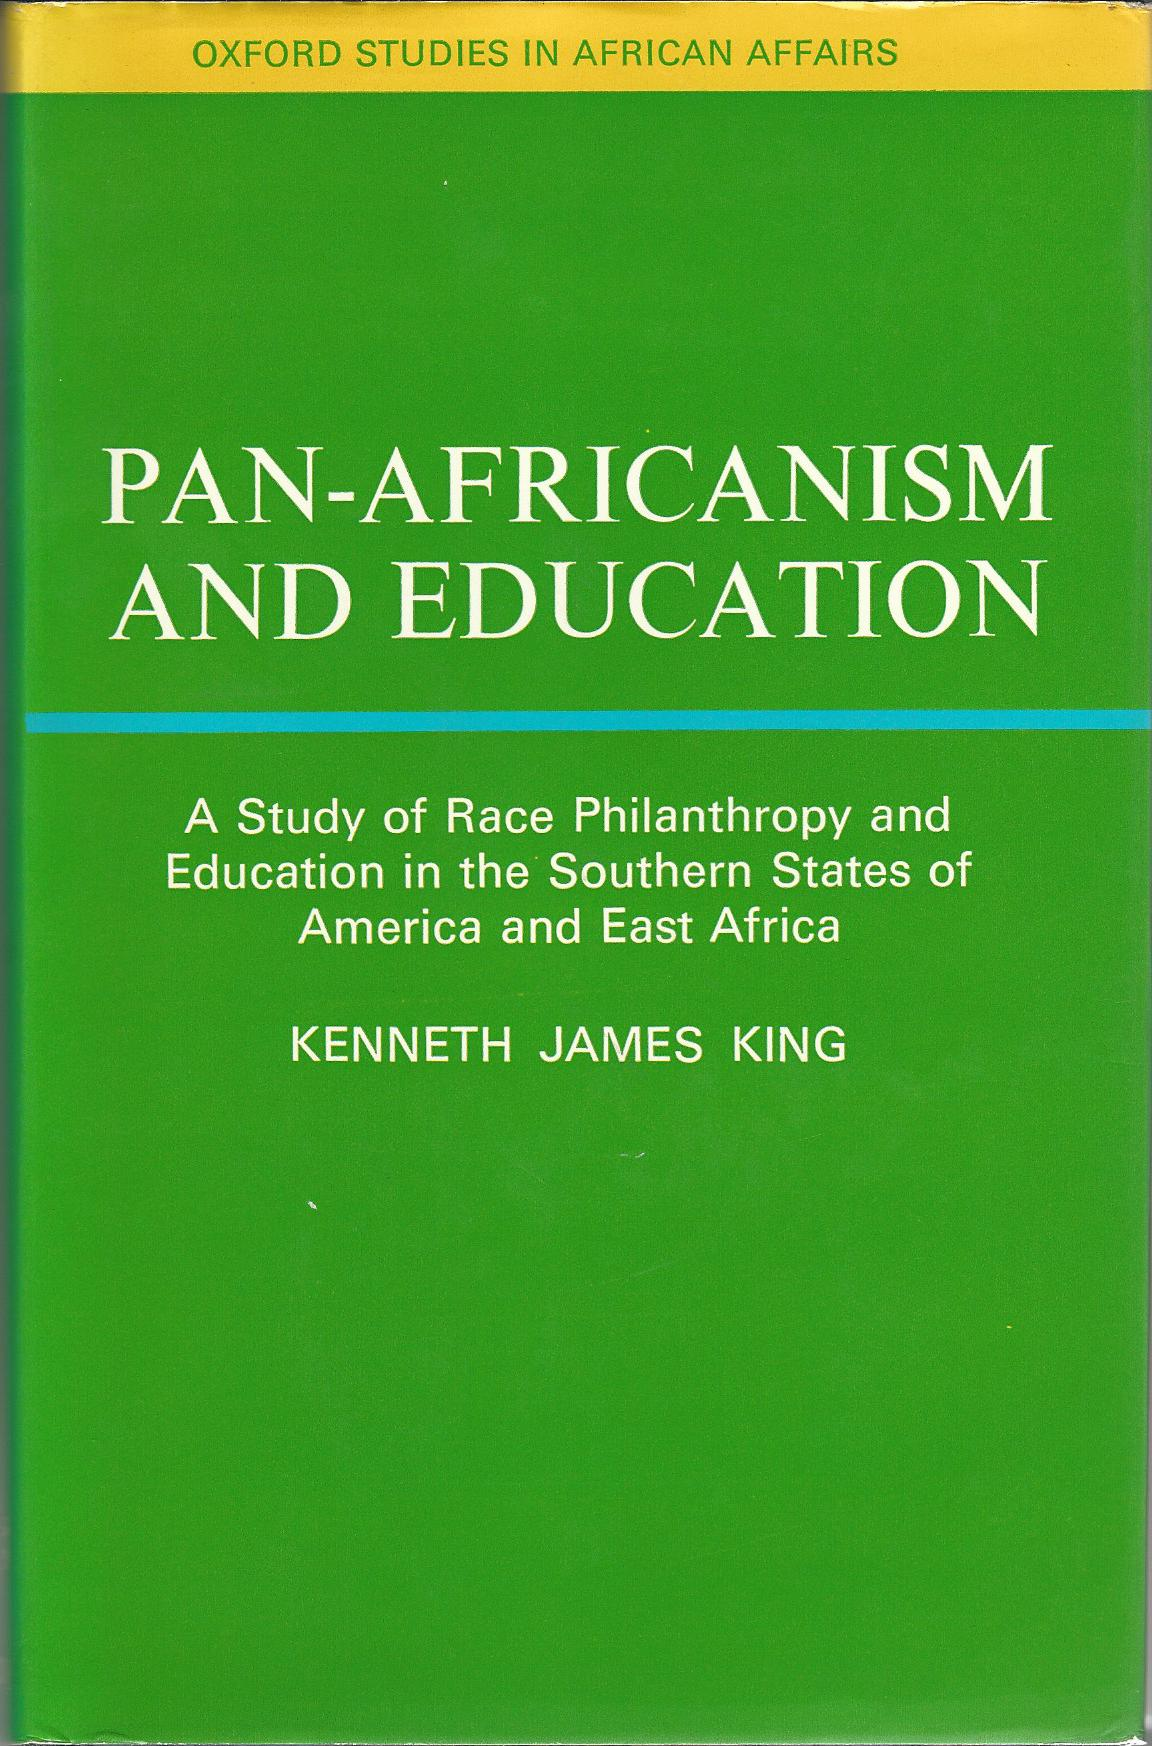 Image for Pan-Africanism and Education: A Study of Race Philanthropy and Education in the Southern States of America and East Africa.